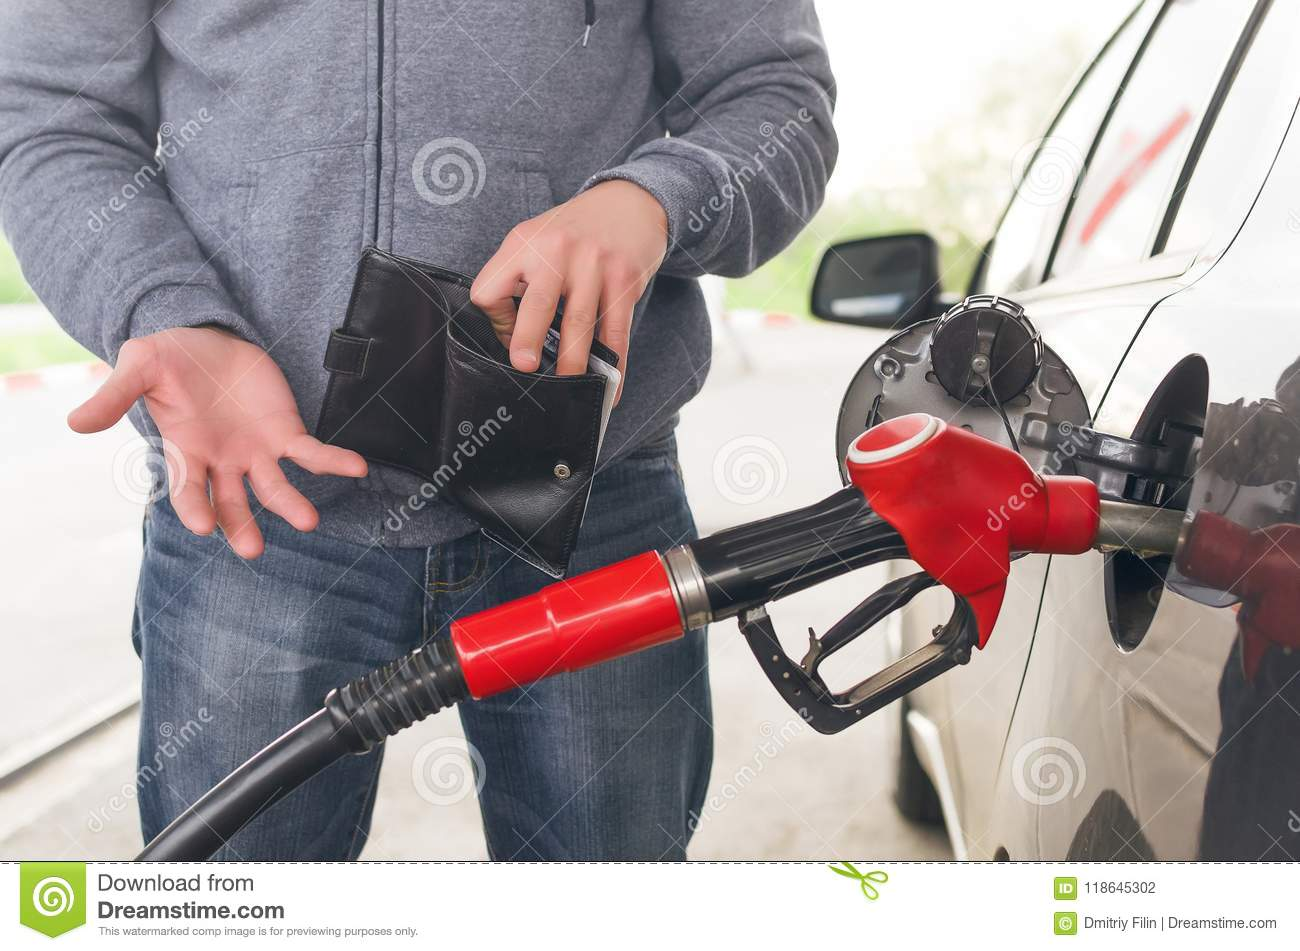 Expensive fuel. Not enough money for gasoline.